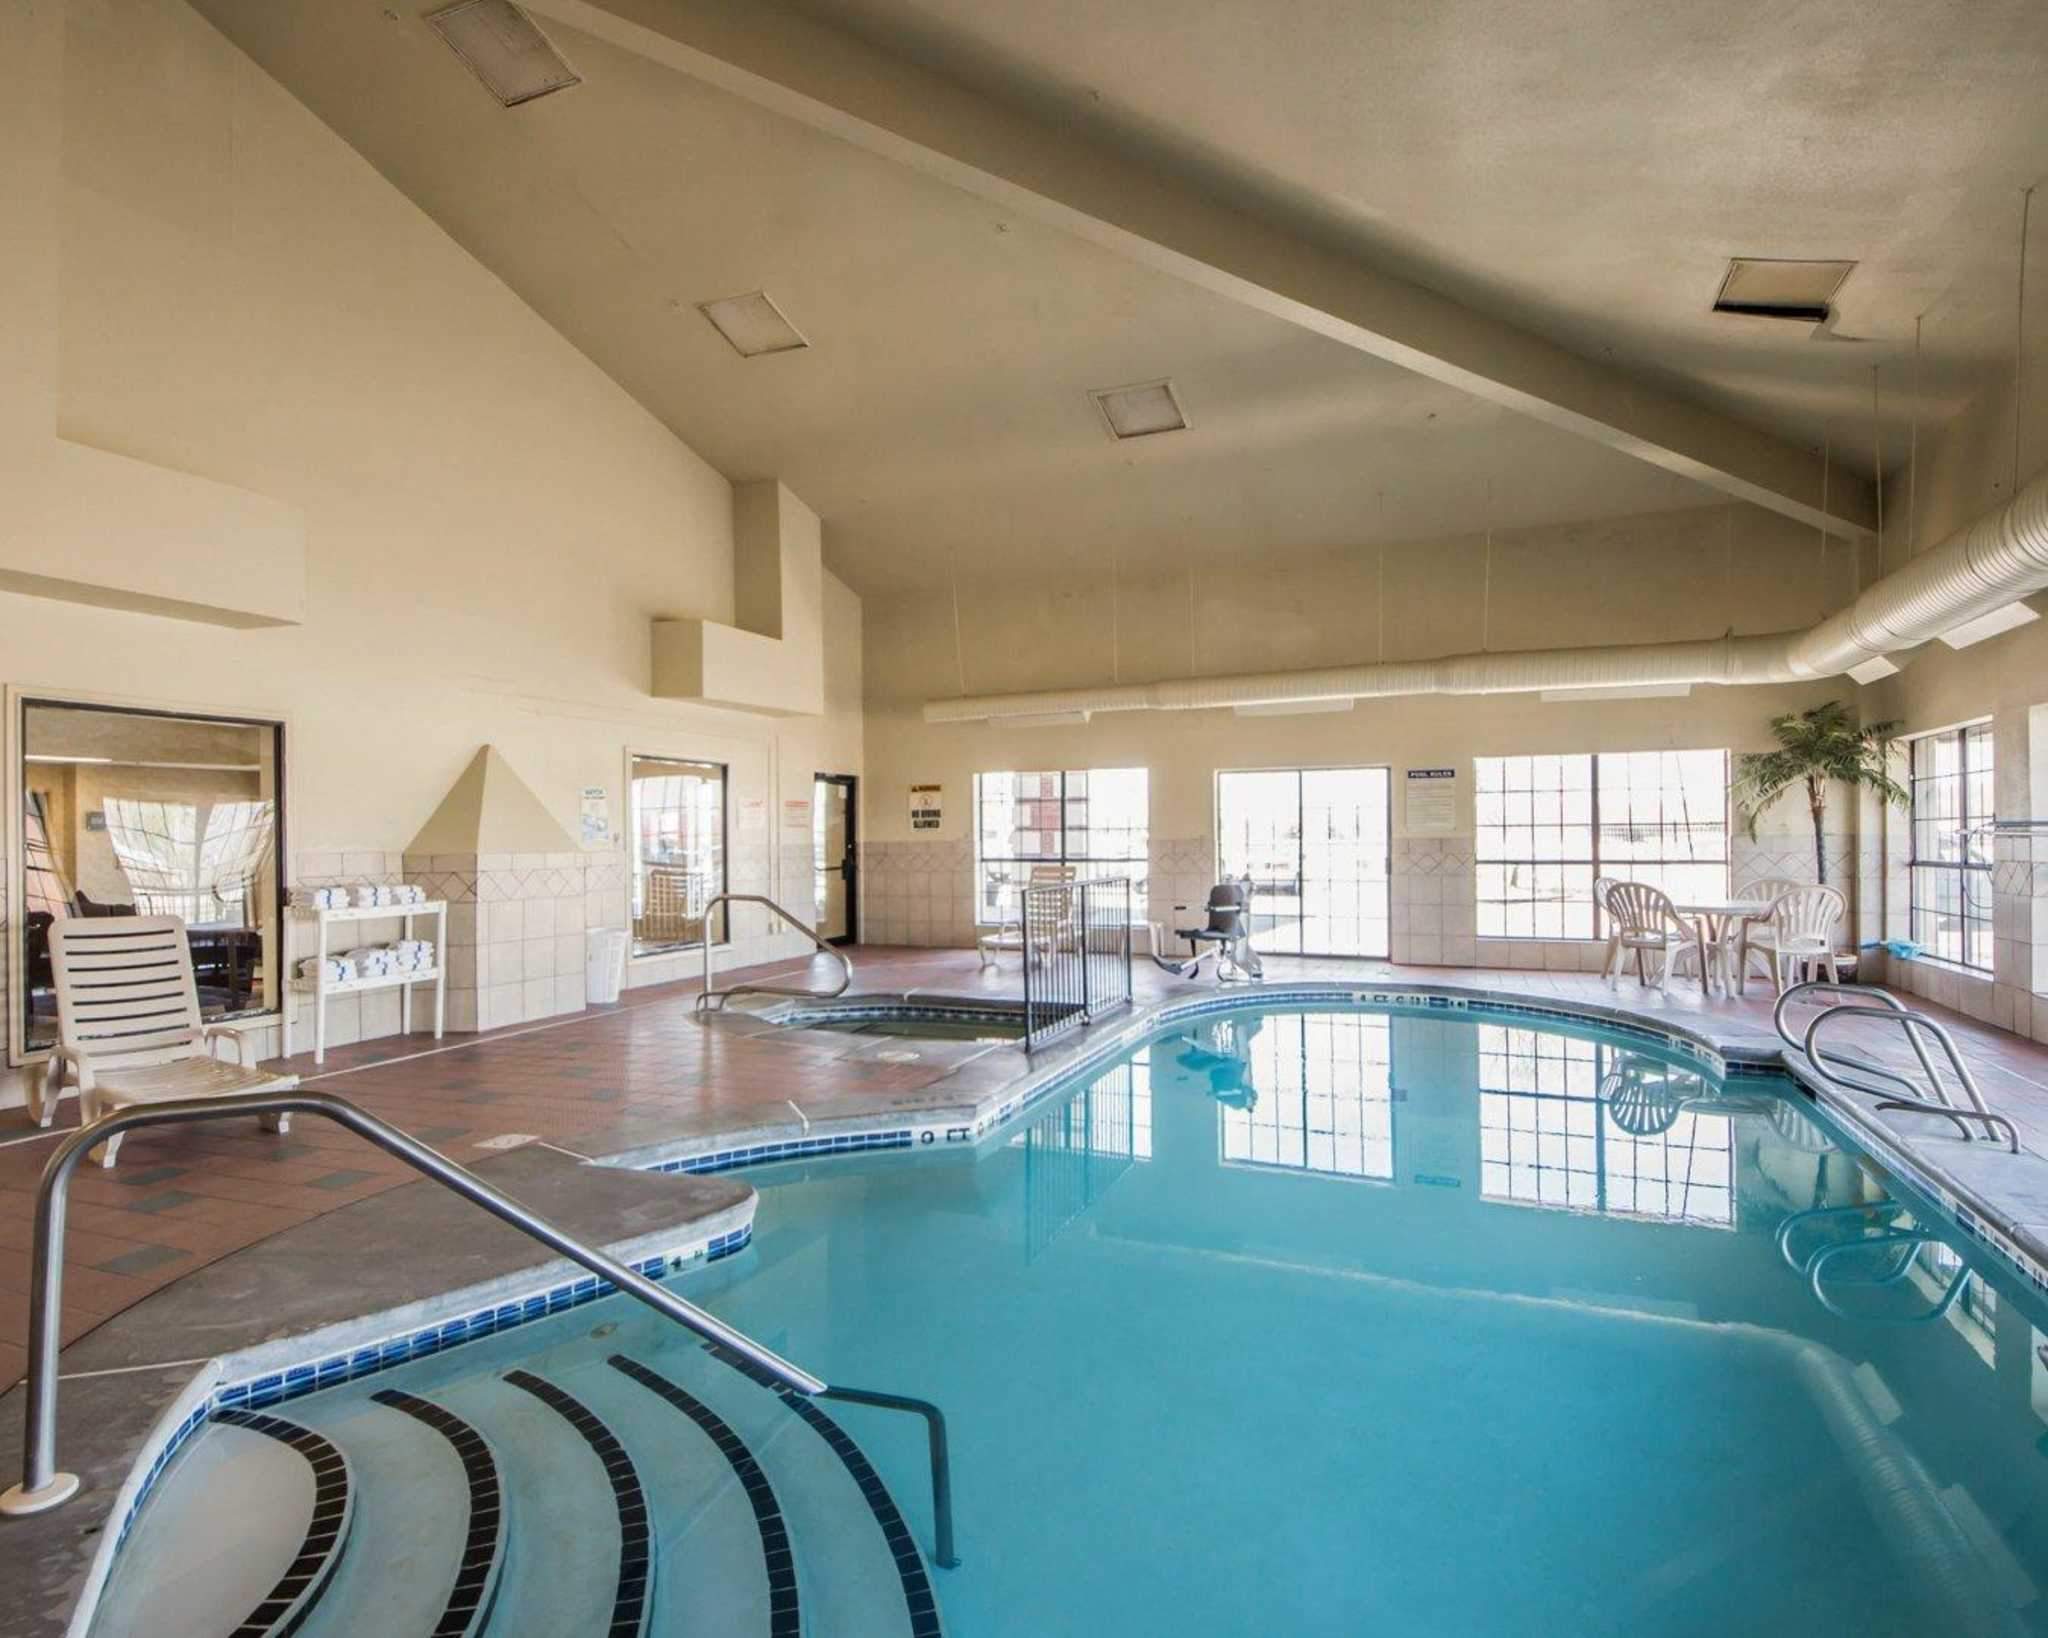 Oklahoma City Hotels With Indoor Pool And Hot Tub